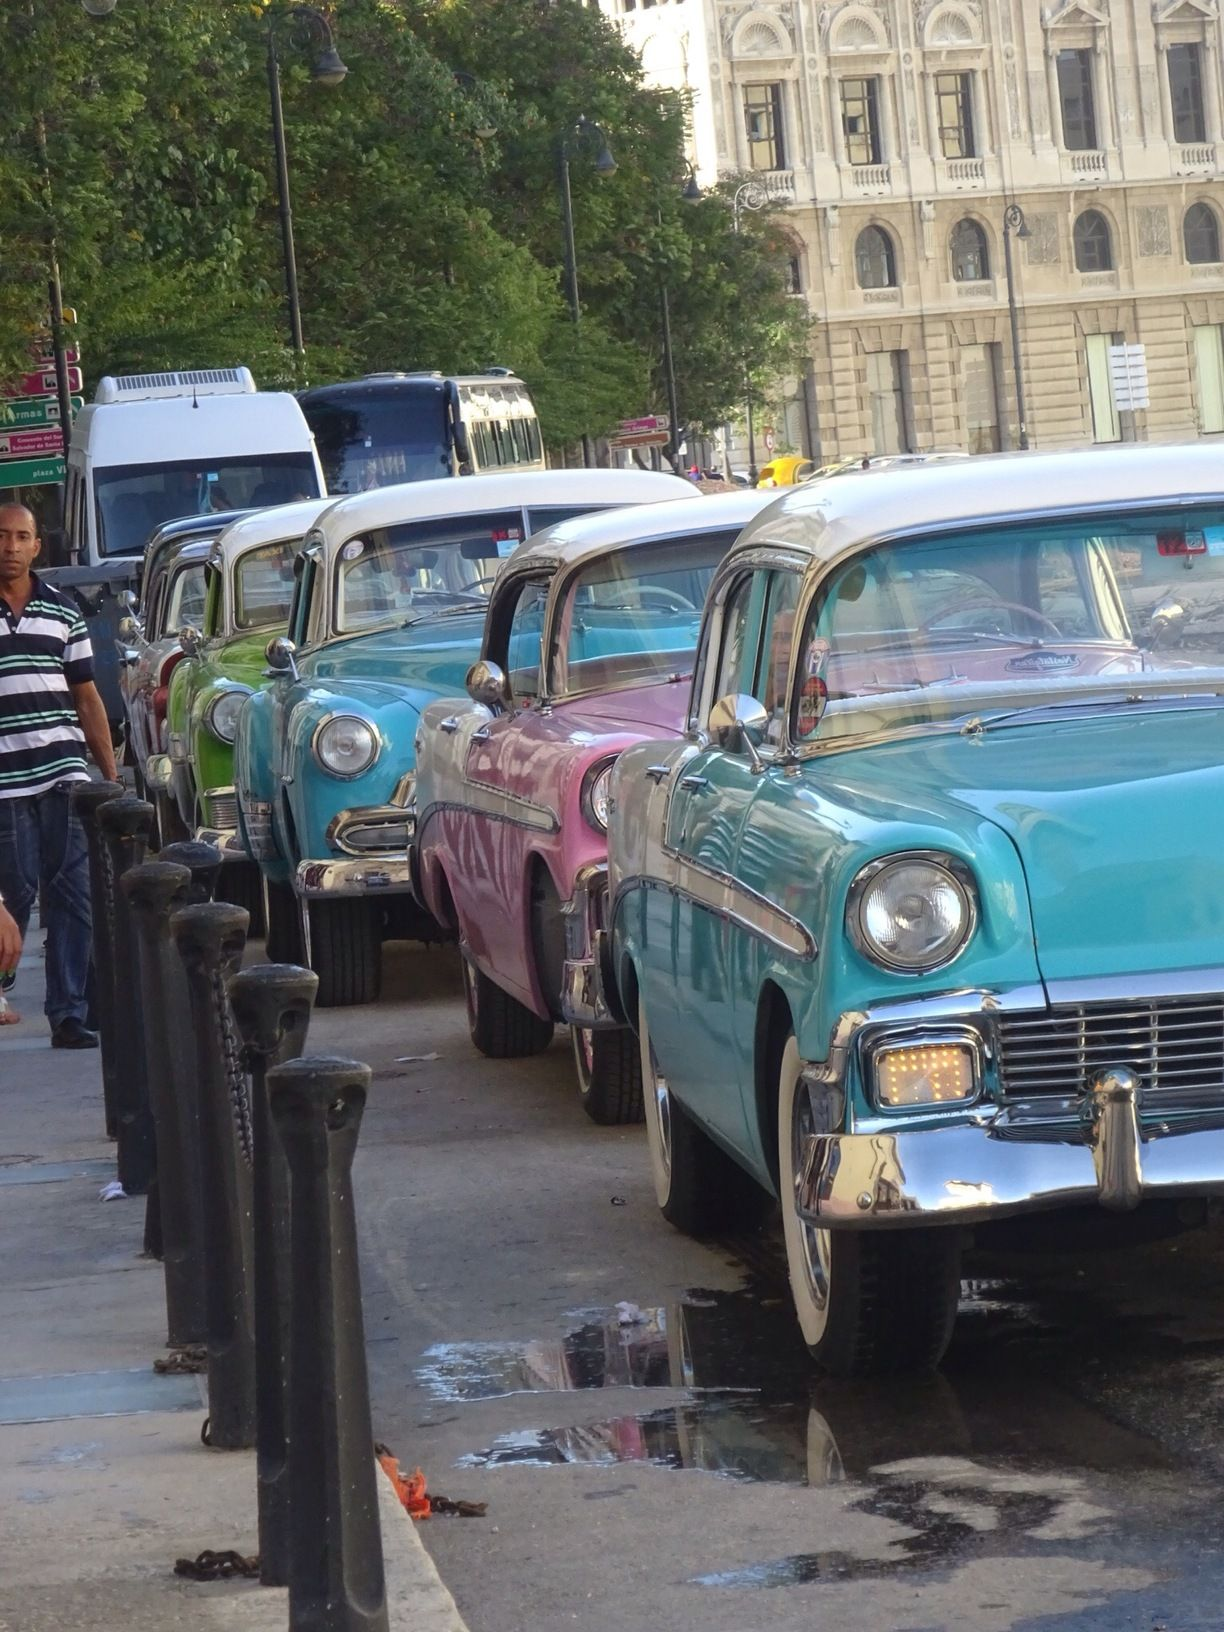 American cars from the 1950's . Cuba